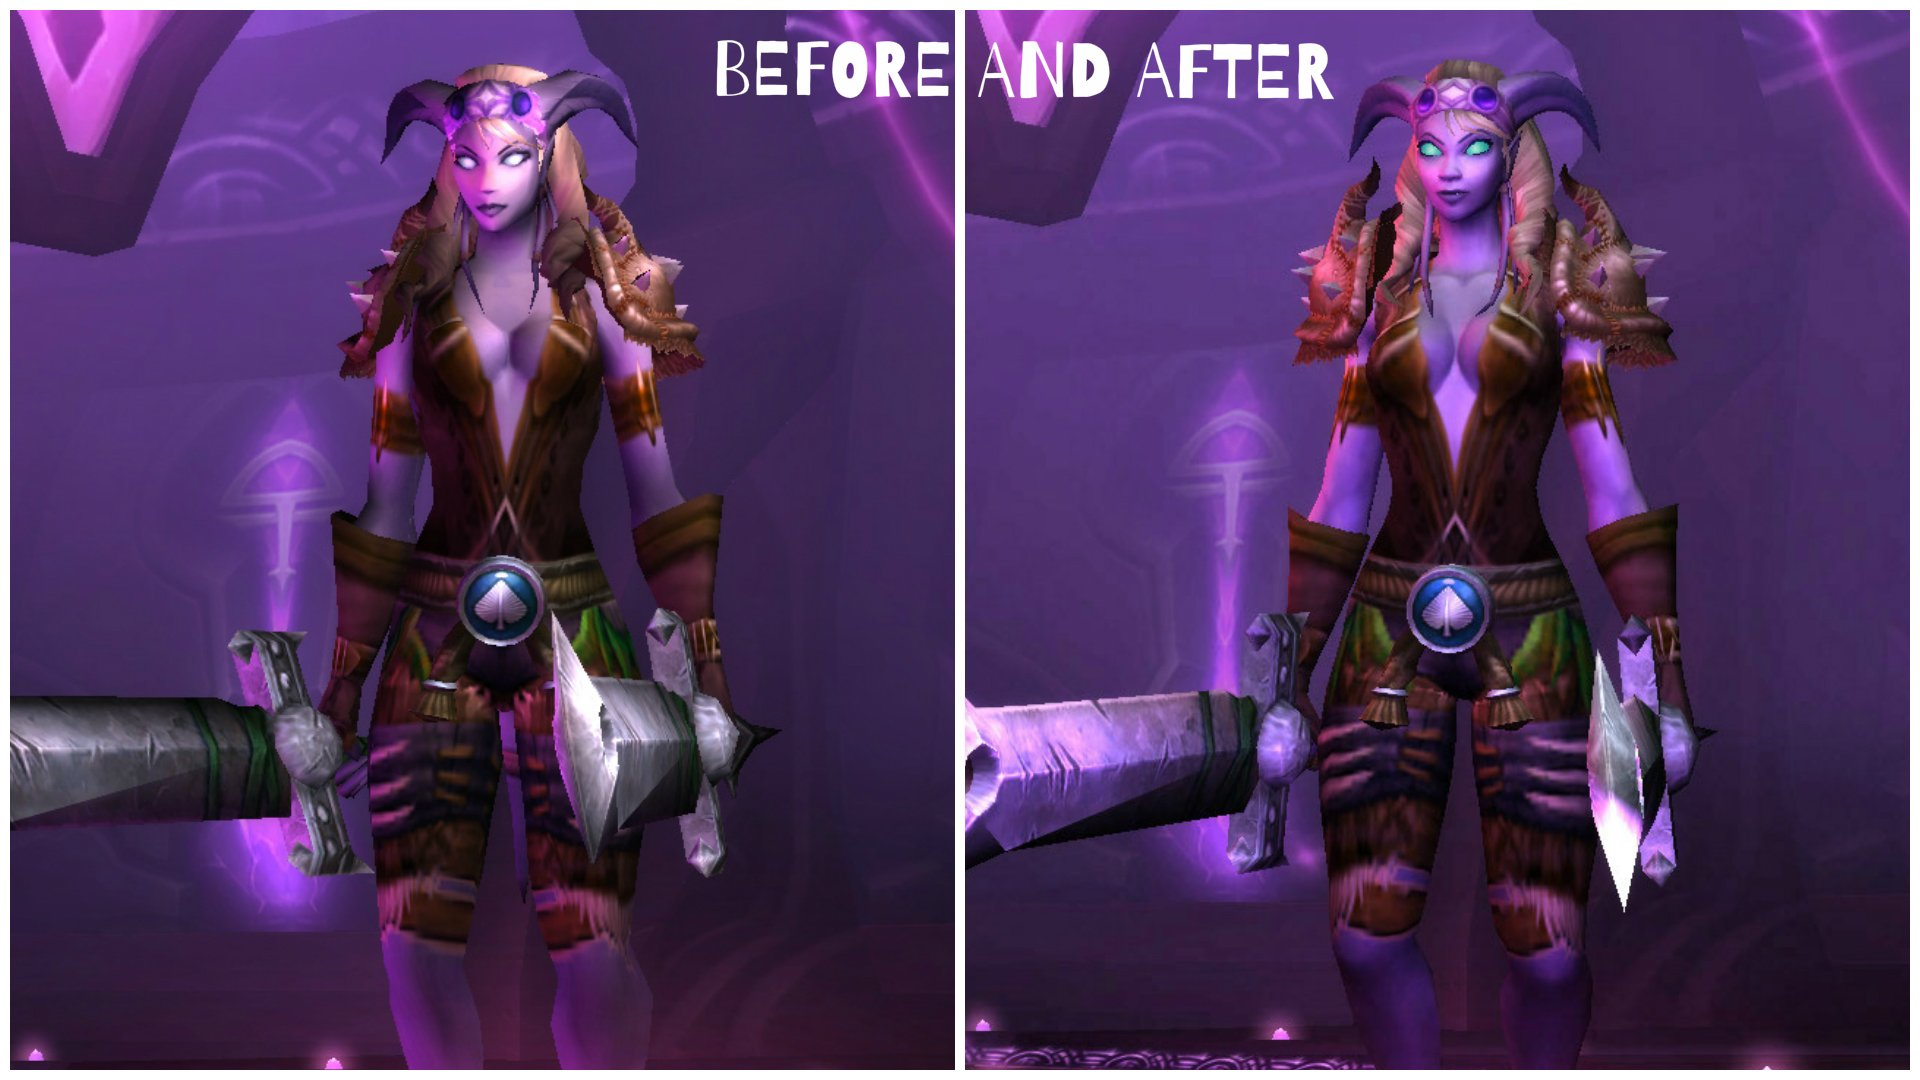 Warcraft draenei and human adult photos